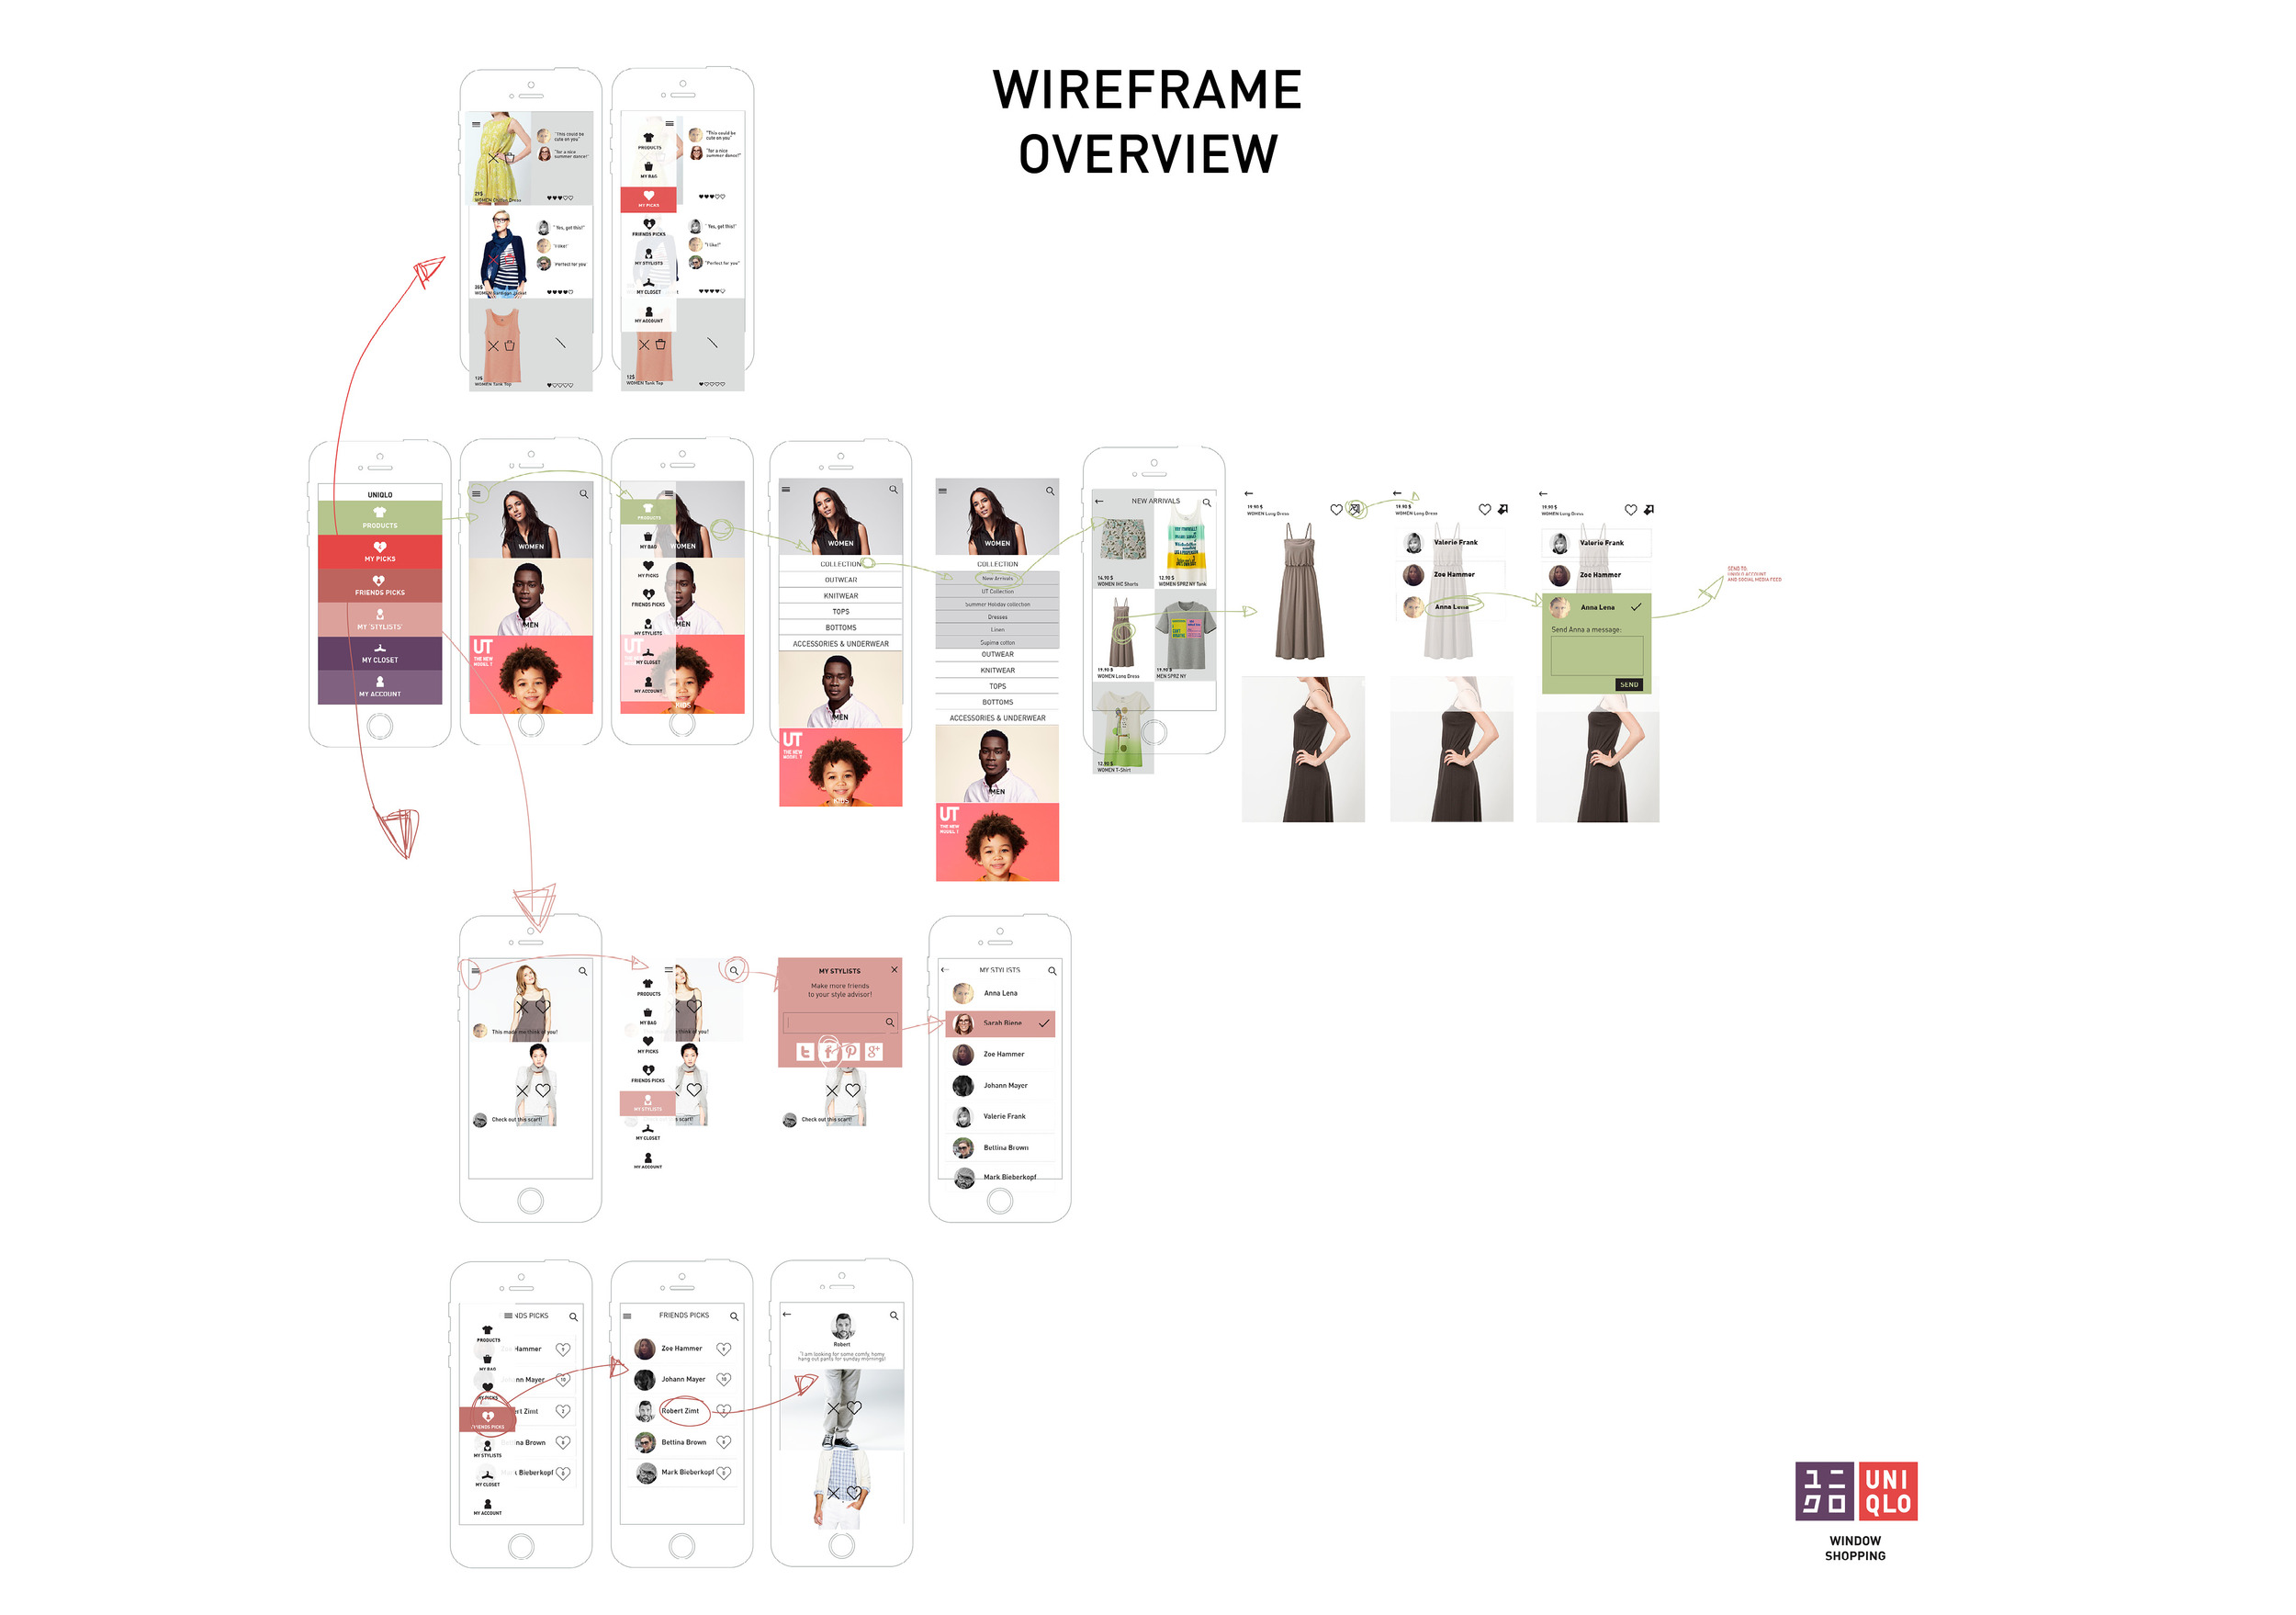 wireframe overview